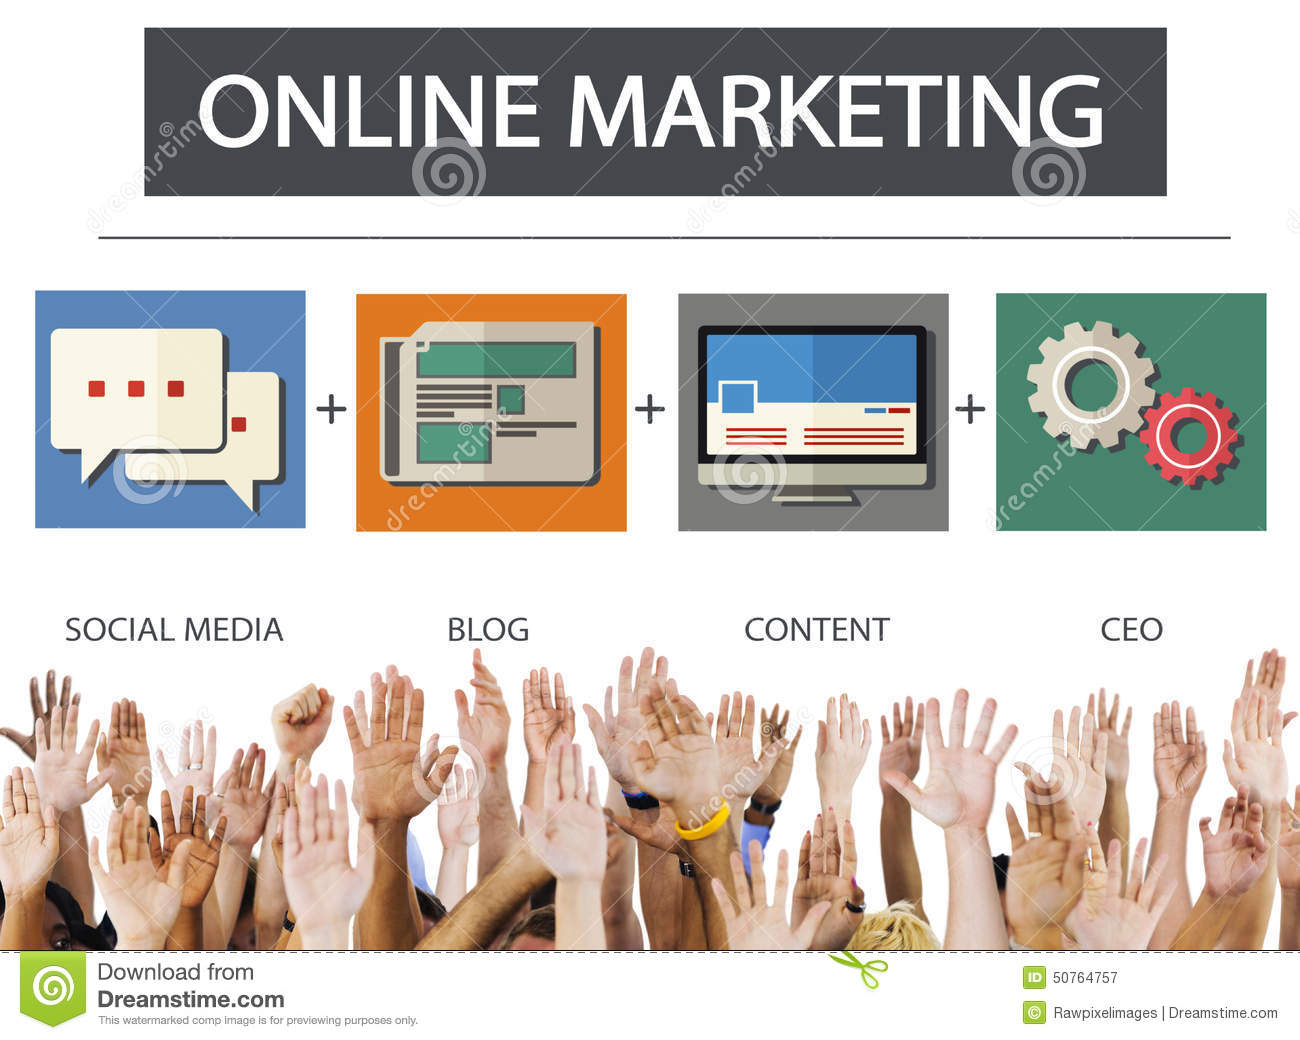 How to Start an Internet Marketing Business on a Budget